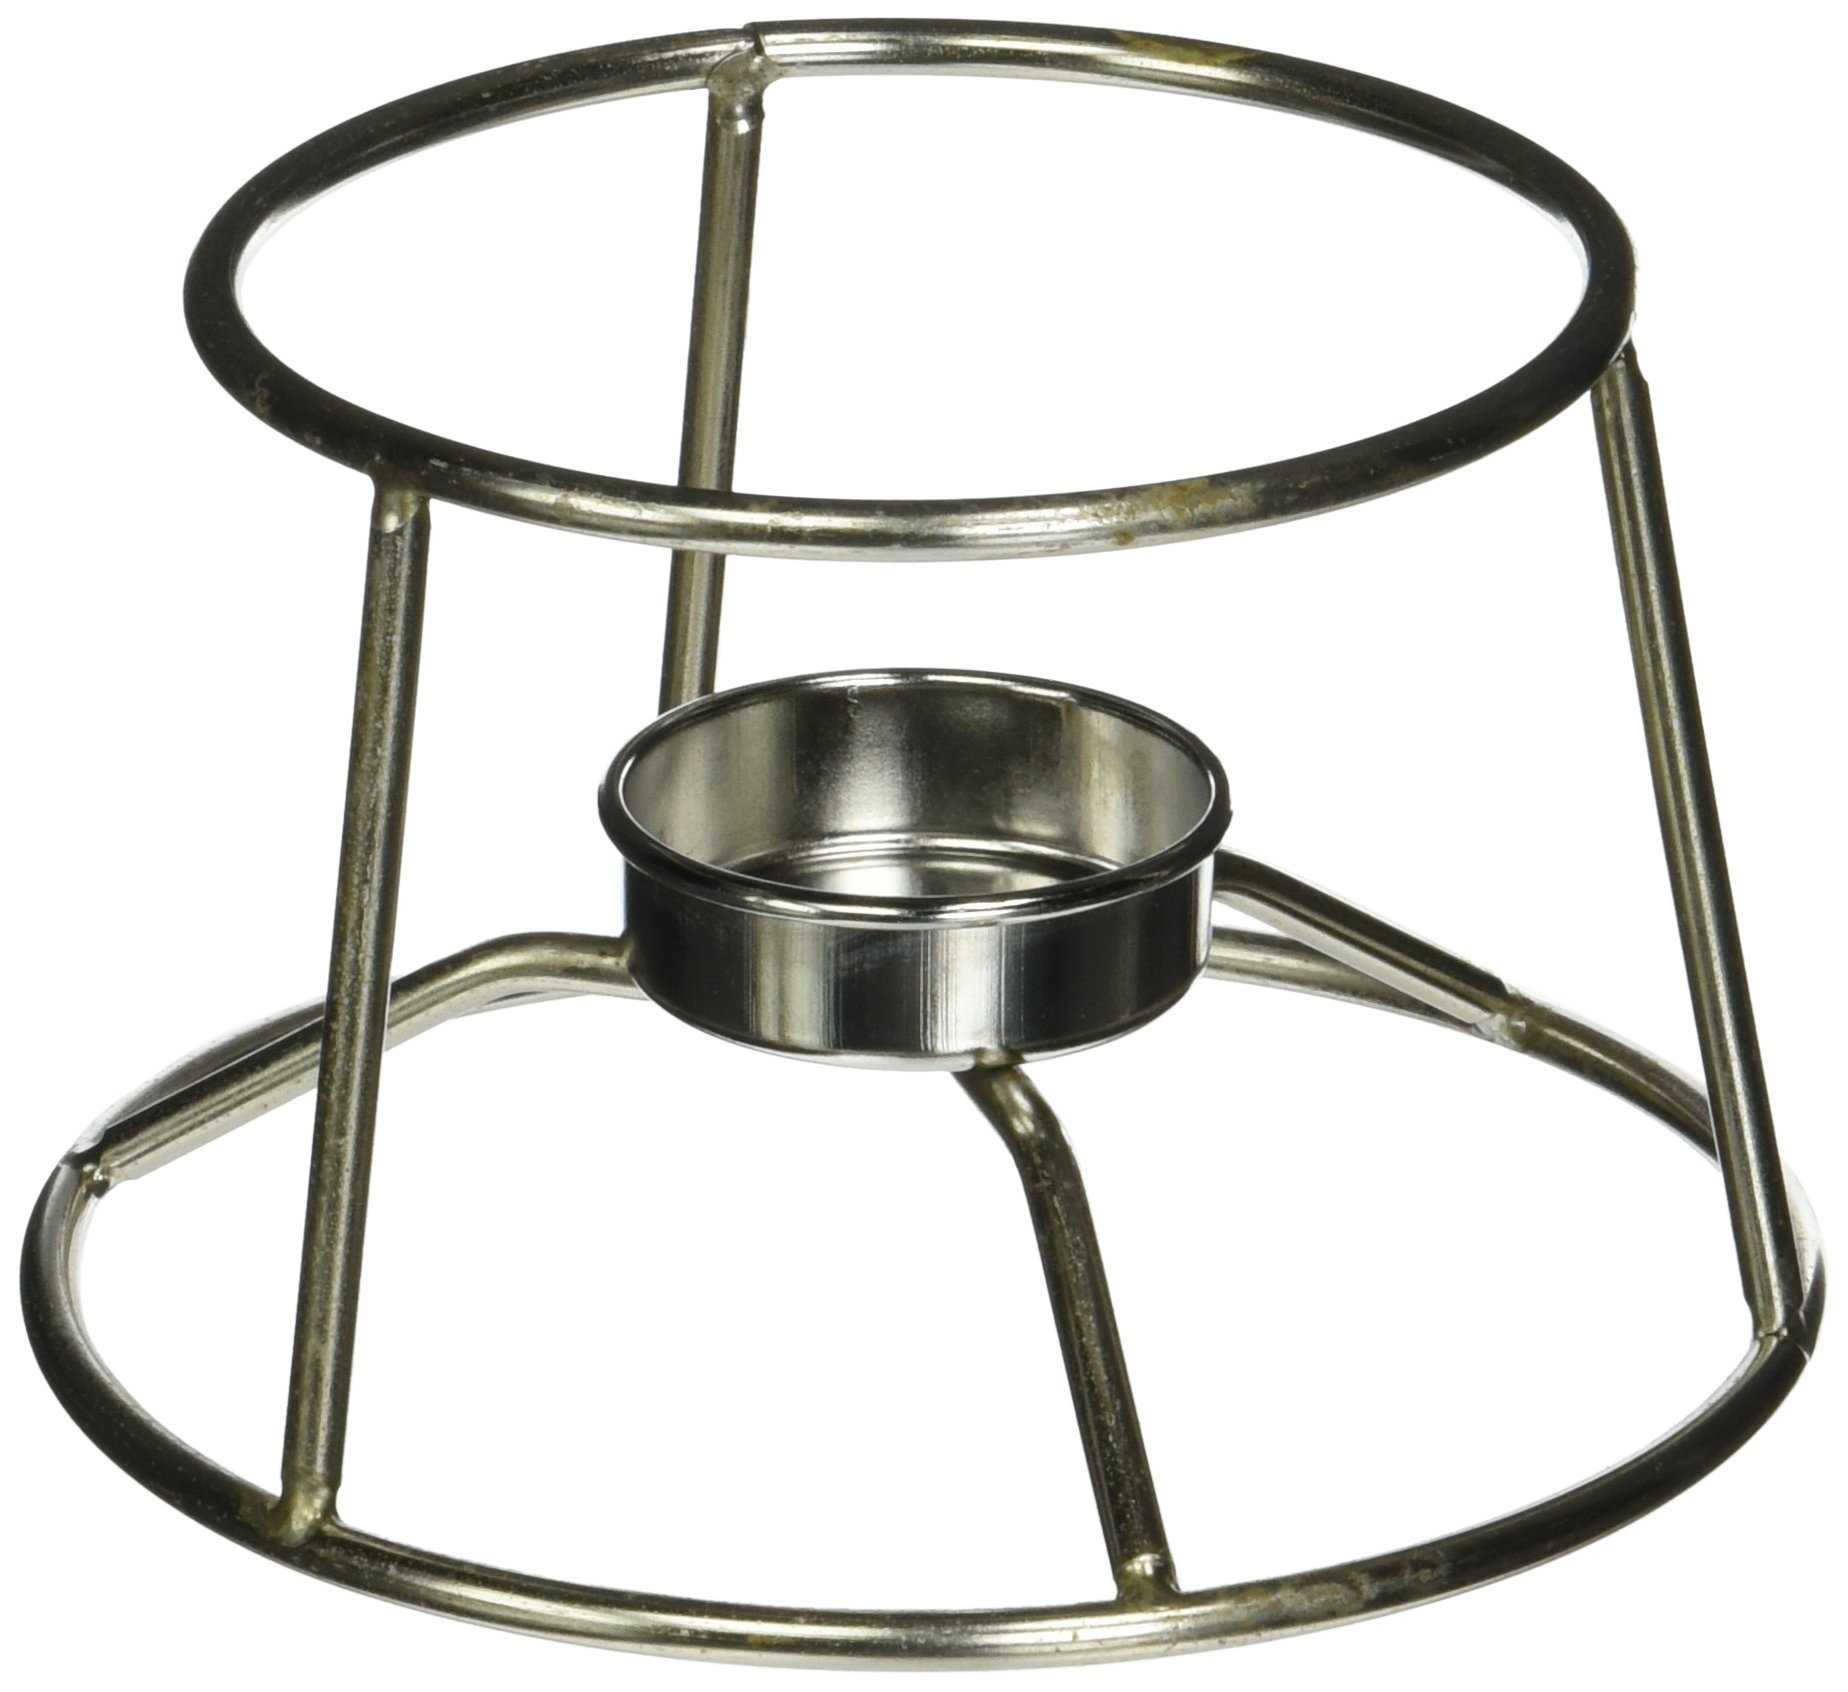 American Metalcraft CIFDR Stainless Steel Fondue Pot Stand, 5-Inch Diameter